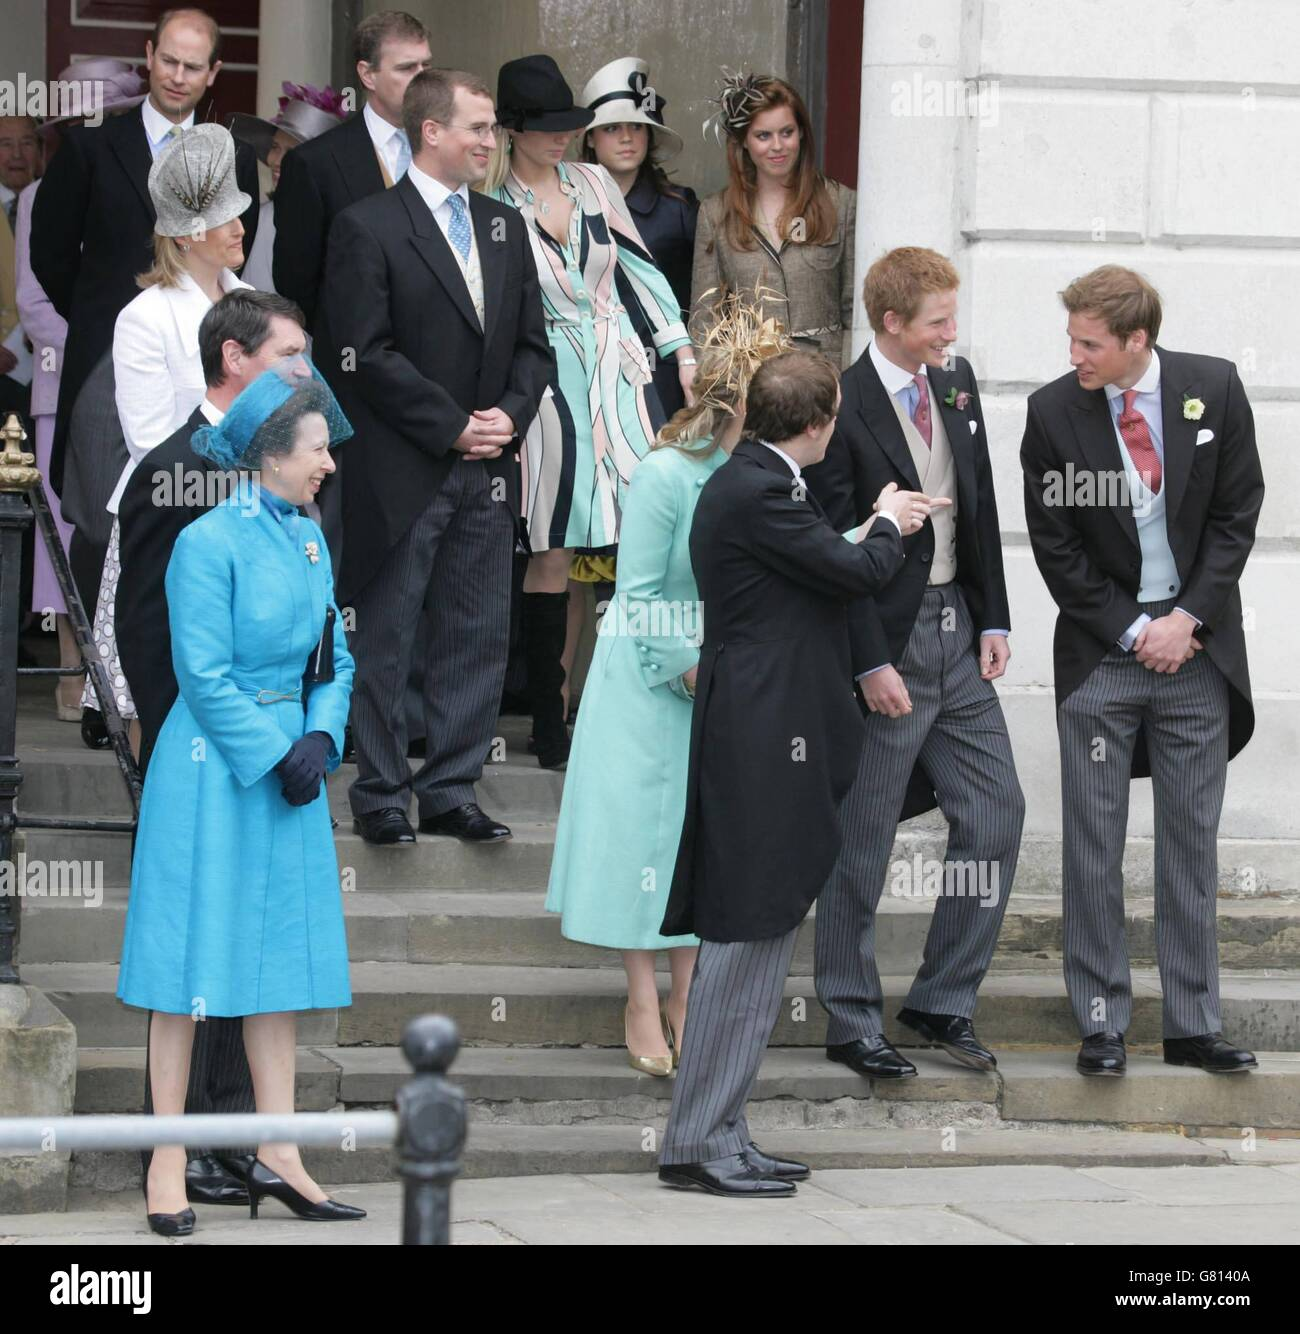 Royal Wedding - Marriage of Prince Charles and Camilla Parker Bowles ...